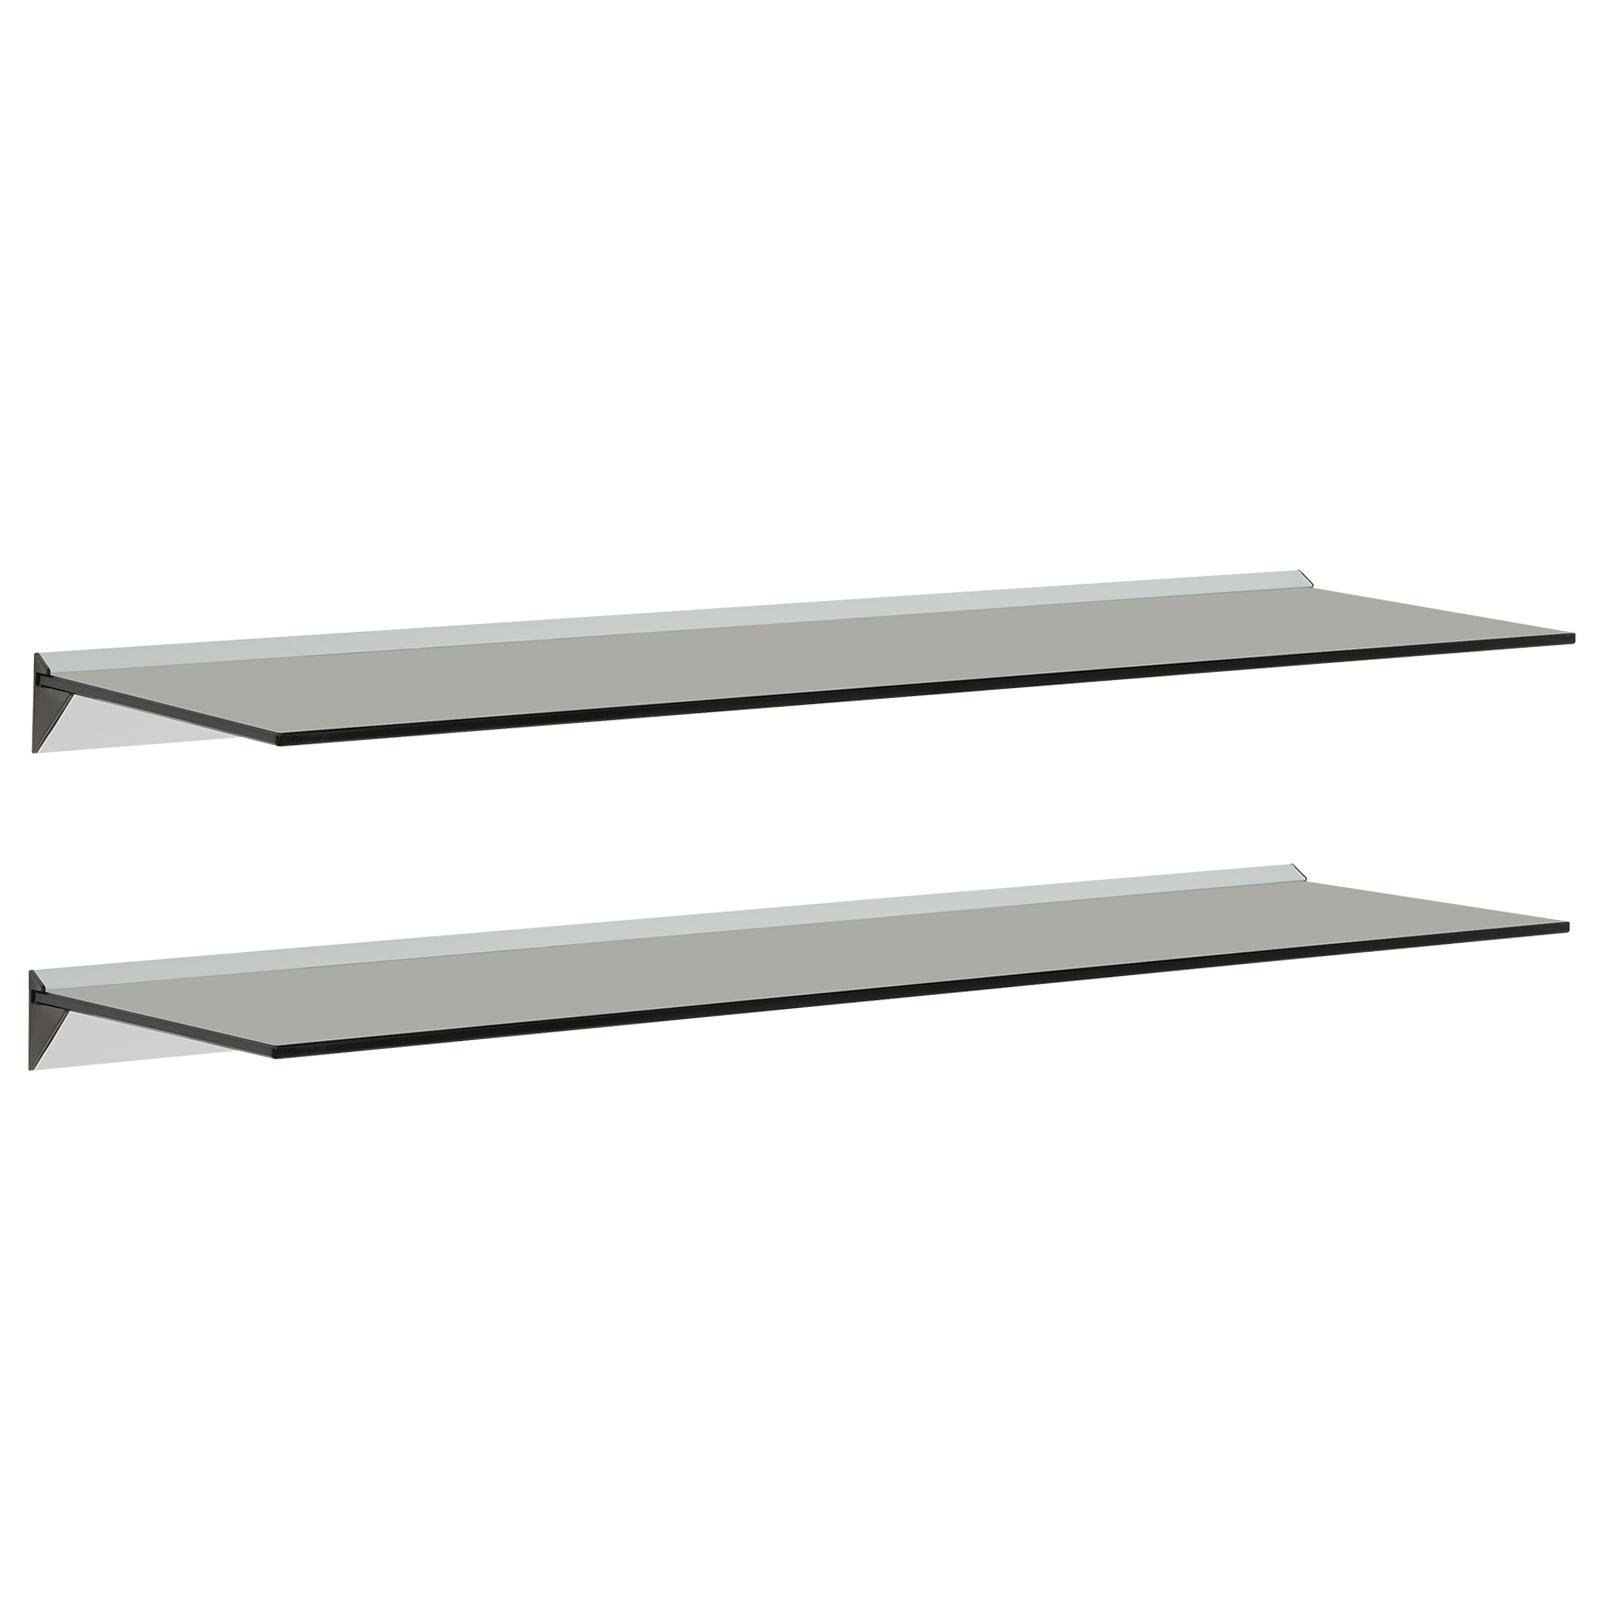 image-Hartleys 100cm Black Floating Glass Wall Shelves - Pair